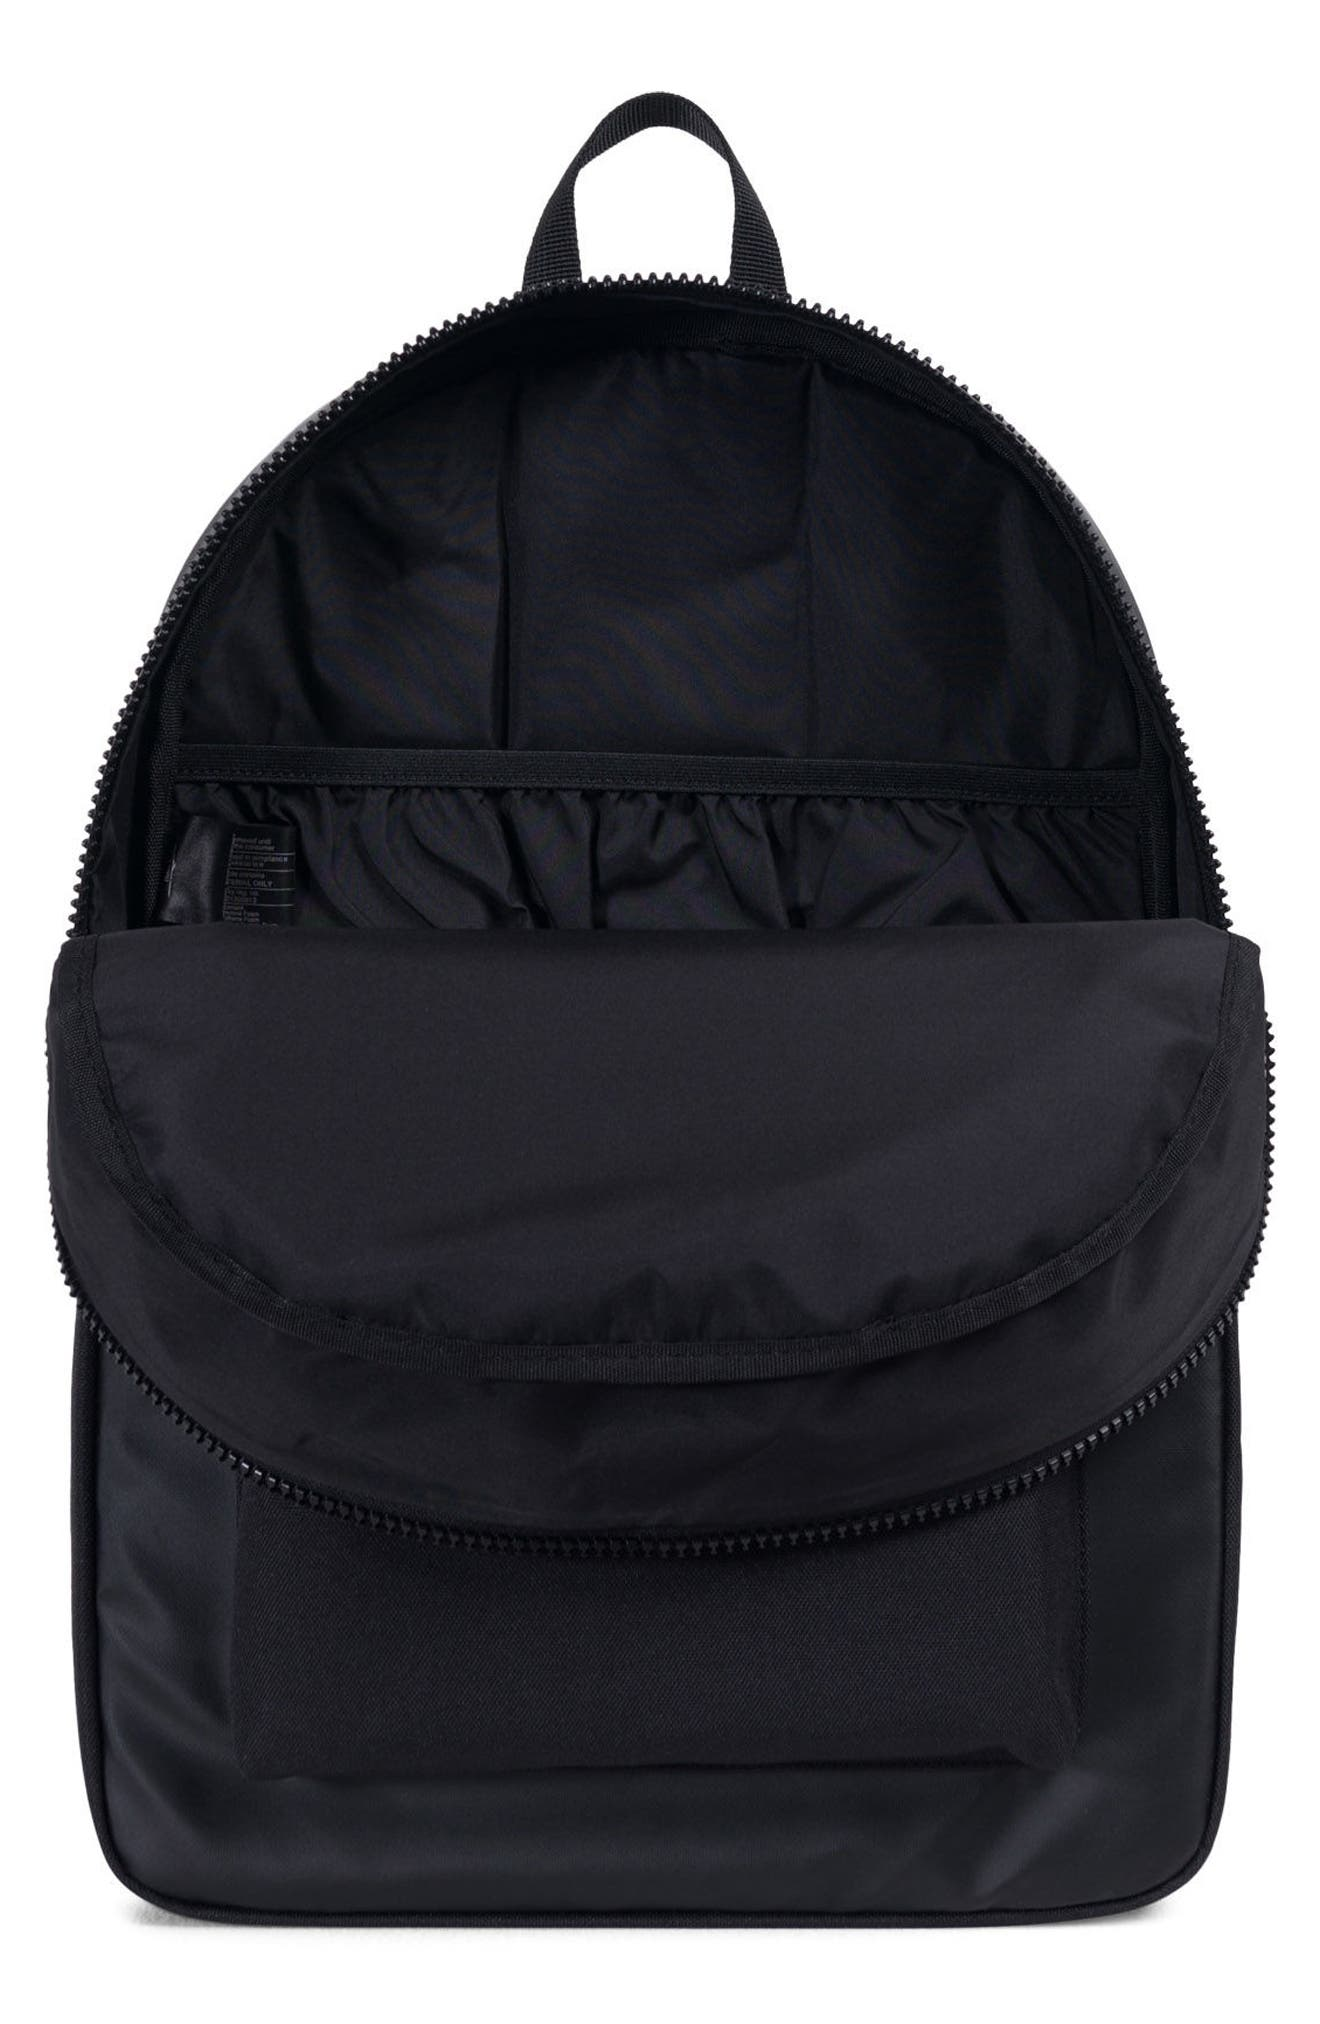 Winlaw Polycoat Studio Backpack,                             Alternate thumbnail 3, color,                             001